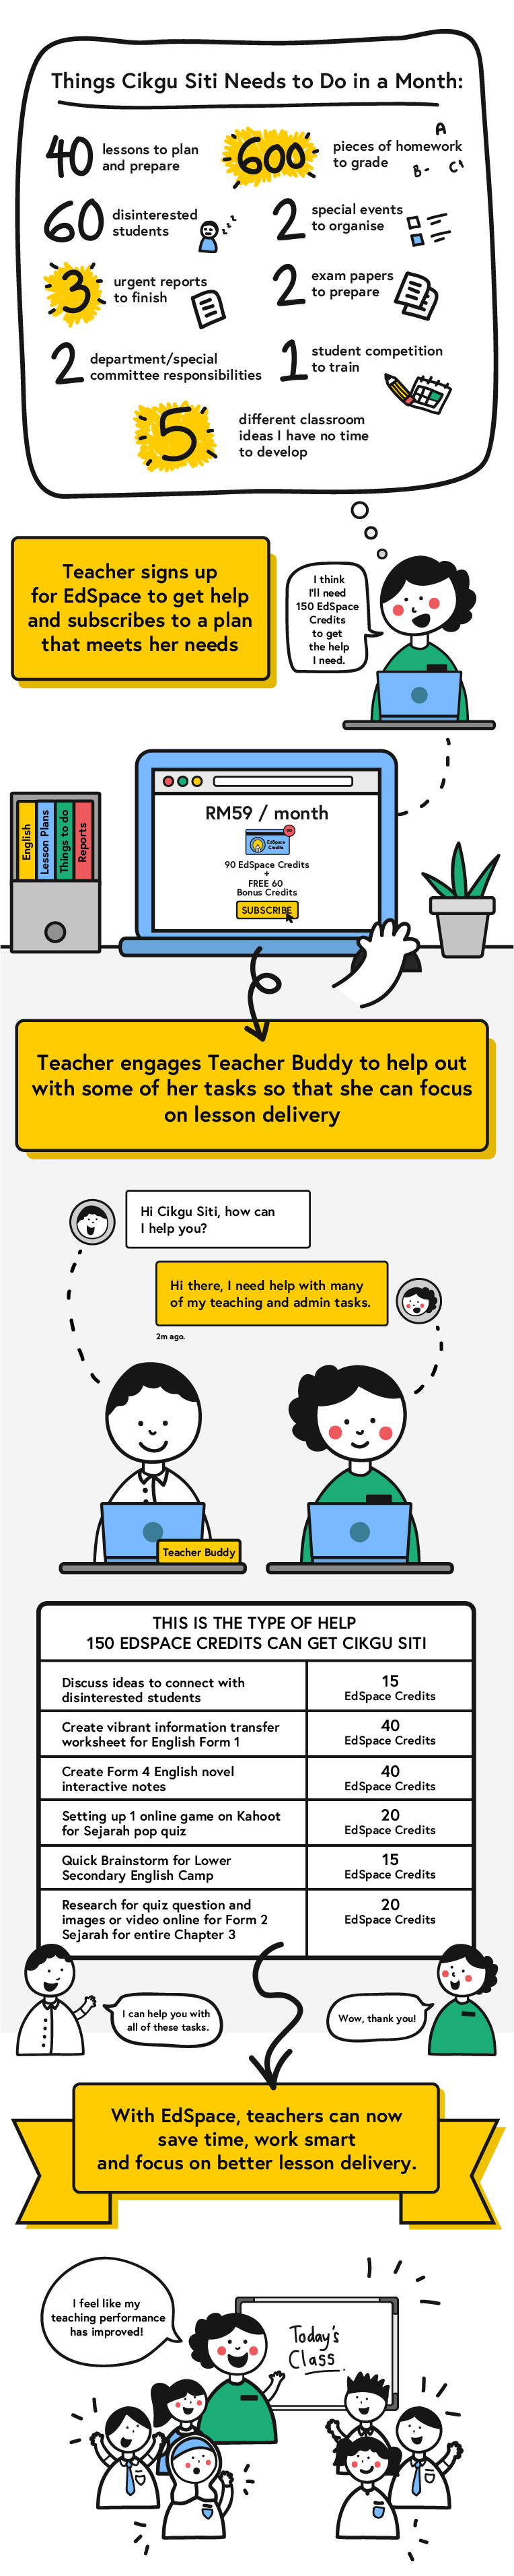 EDSPACE_HOW IT WORKS_INFOGRAPHIC-01.jpg